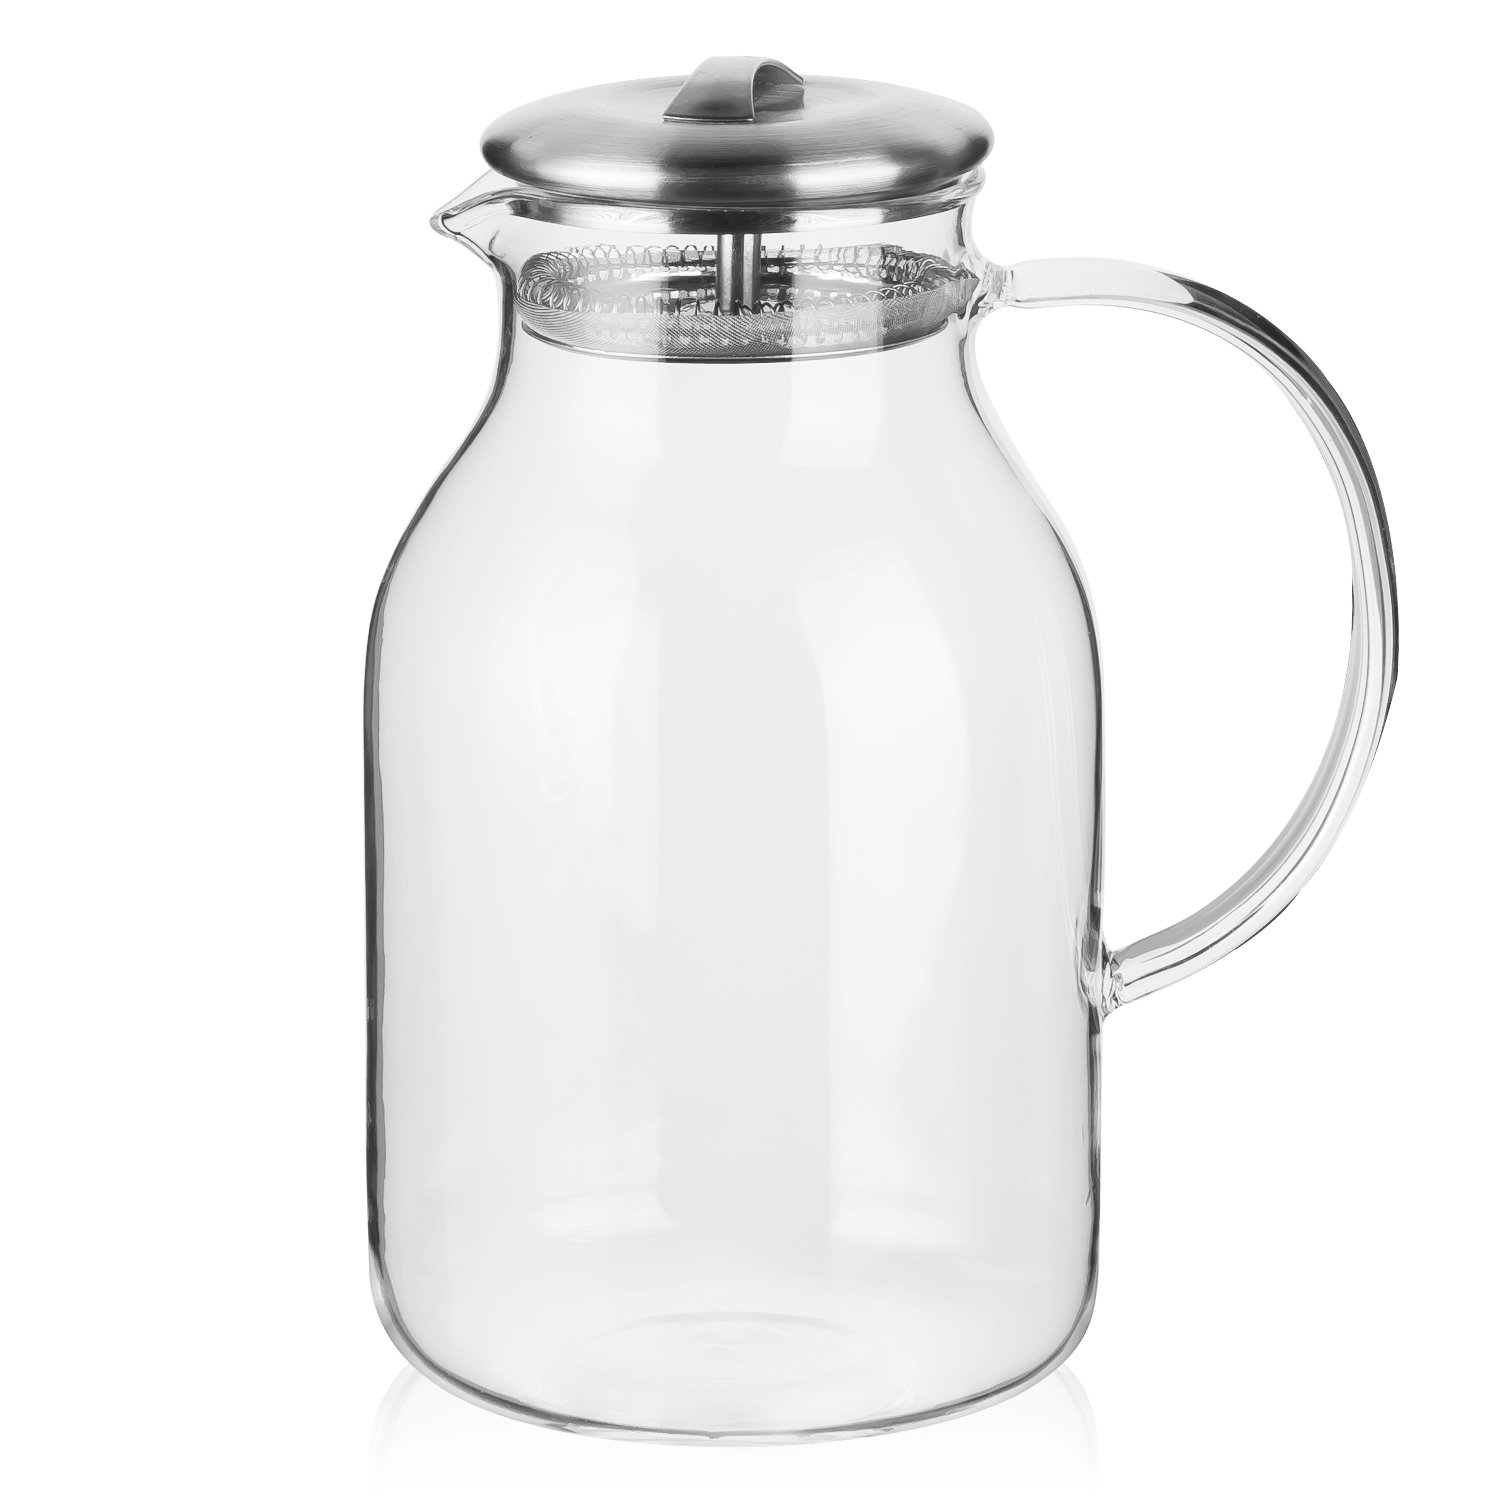 amazoncom  hiware  ounce glass pitcher with lid and spout  - amazoncom  hiware  ounce glass pitcher with lid and spout  heatresistant pitcher for hotcold water  iced tea carafes  pitchers